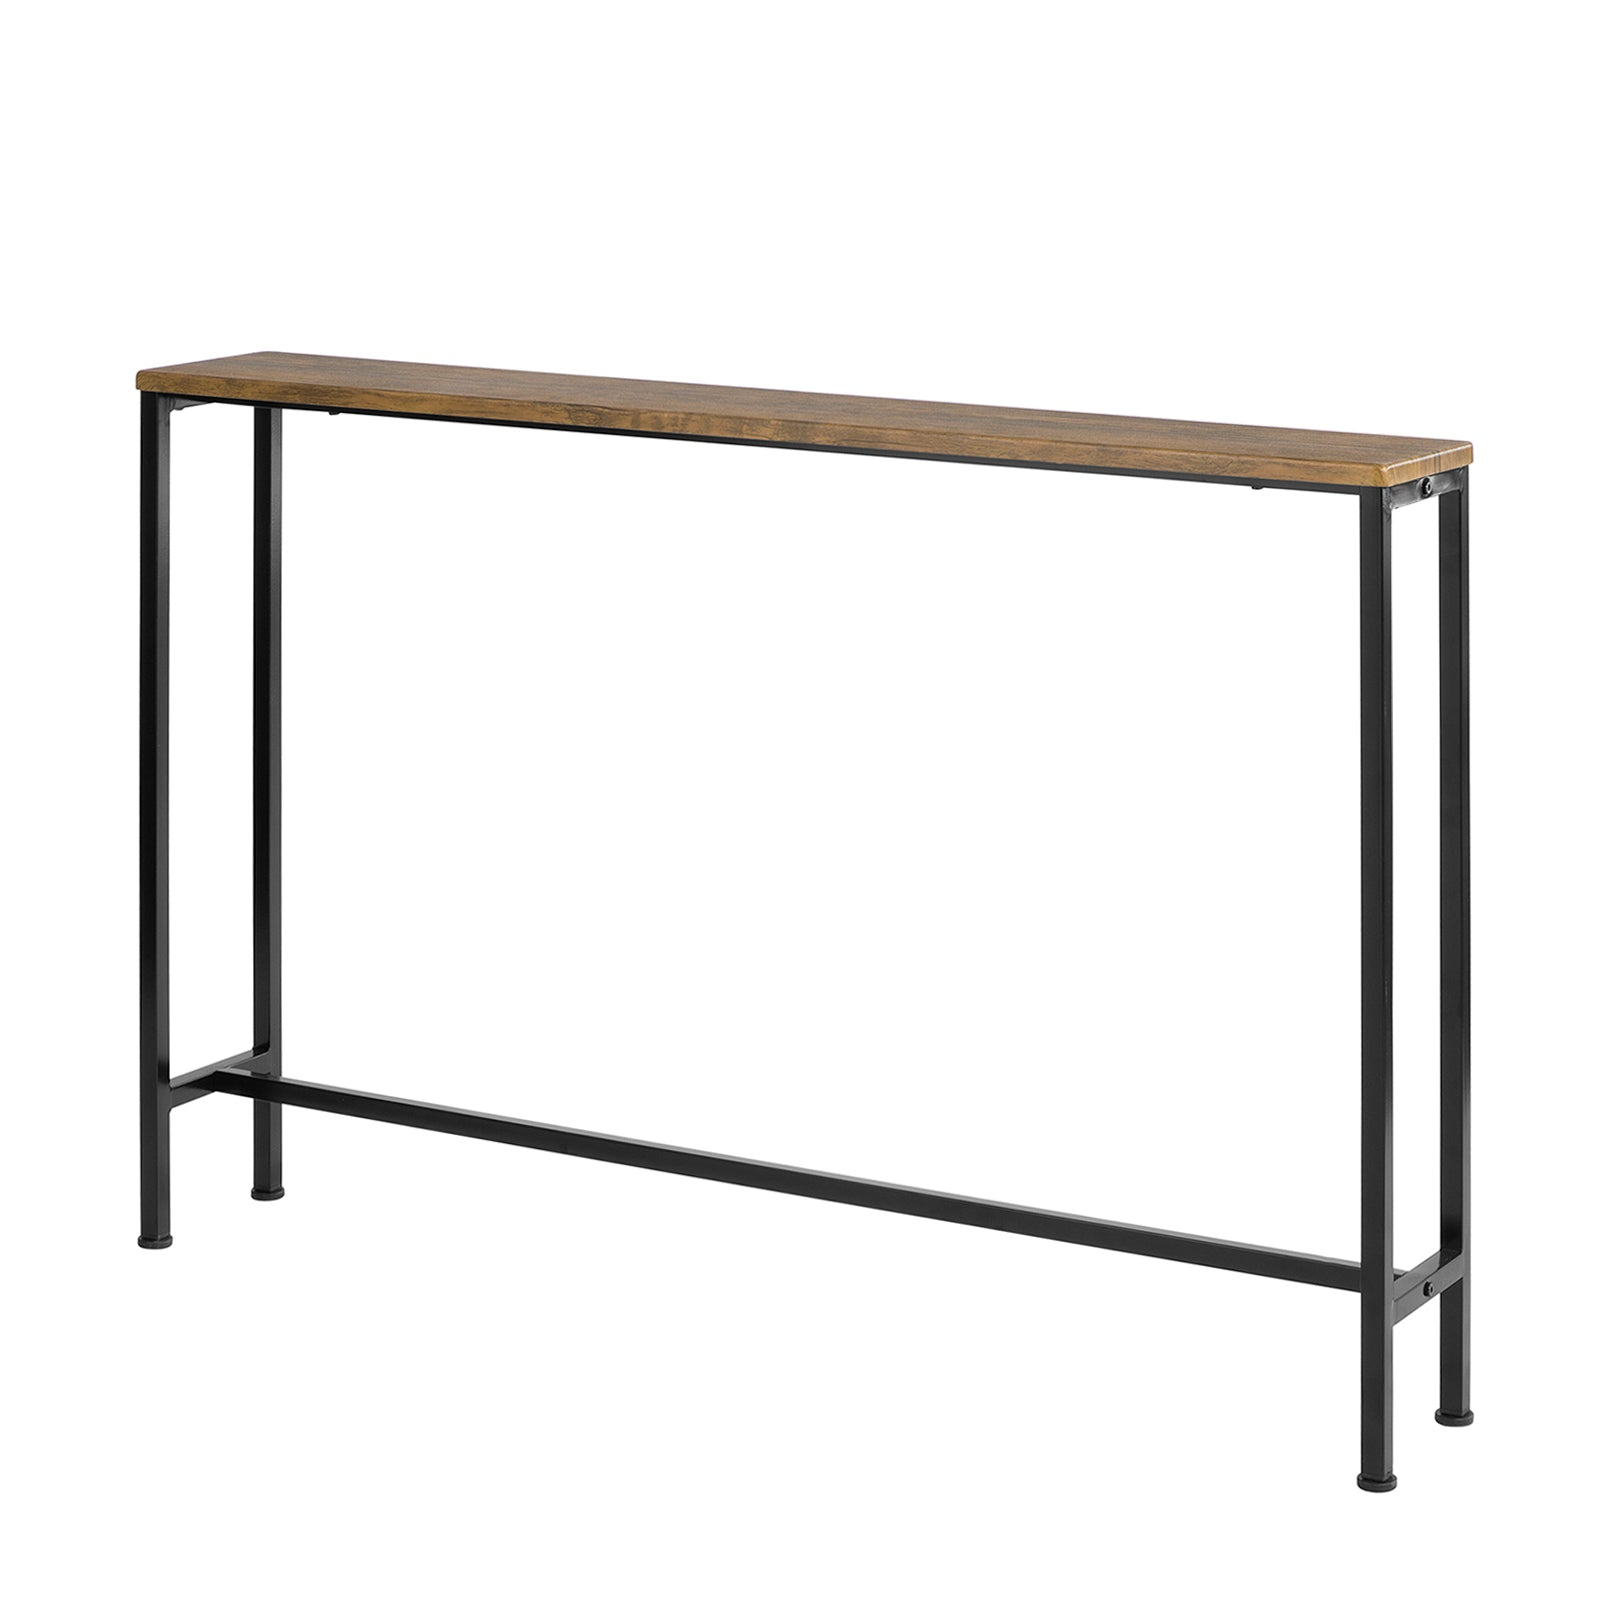 SoBuy Vintage Console Table Entrance Table Space Saving Sofa Table L120 * W20 * H80 cm Brown FSB19-XL-N